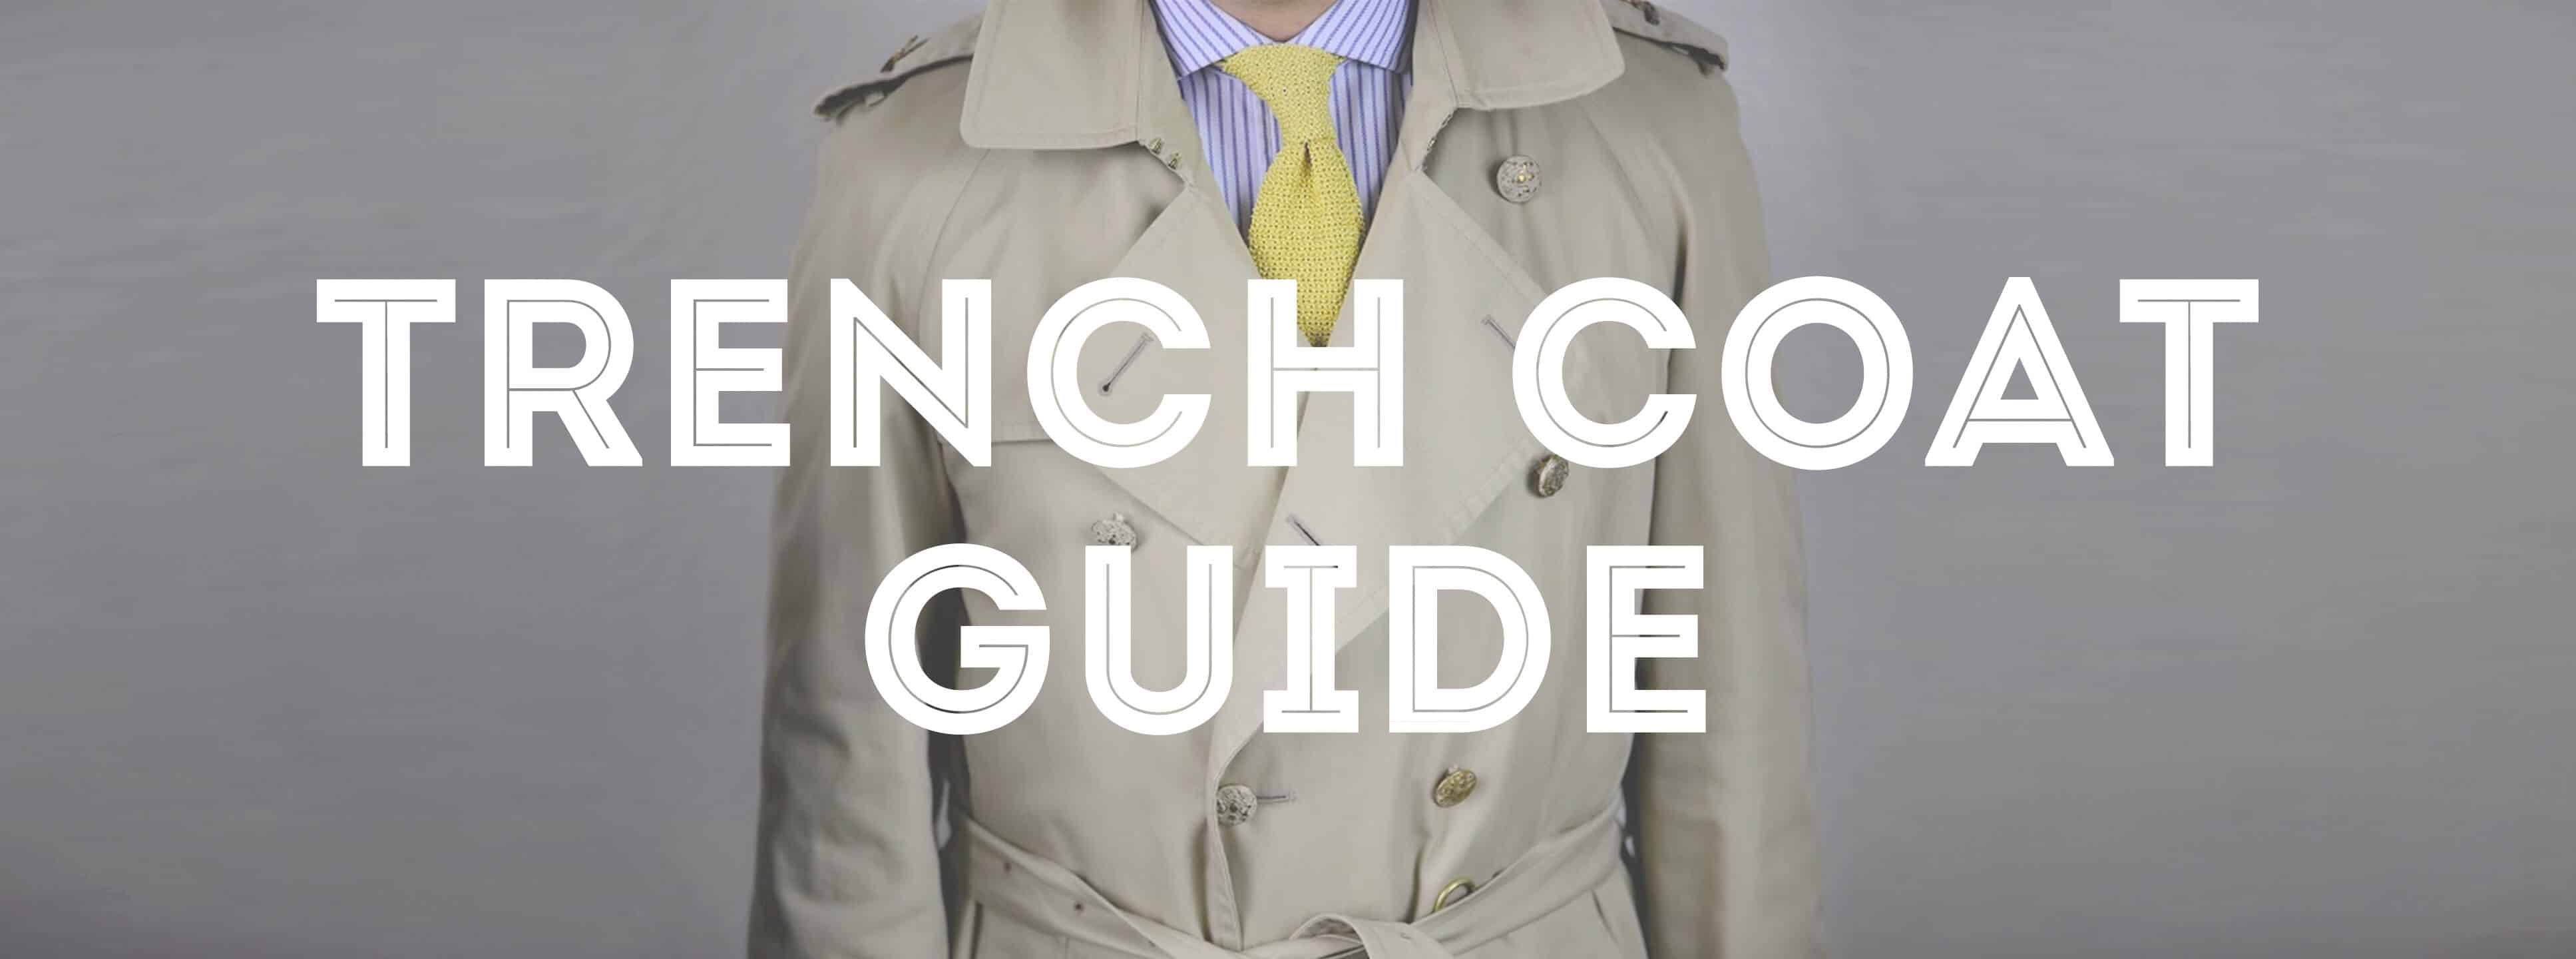 Trench Coat Guide